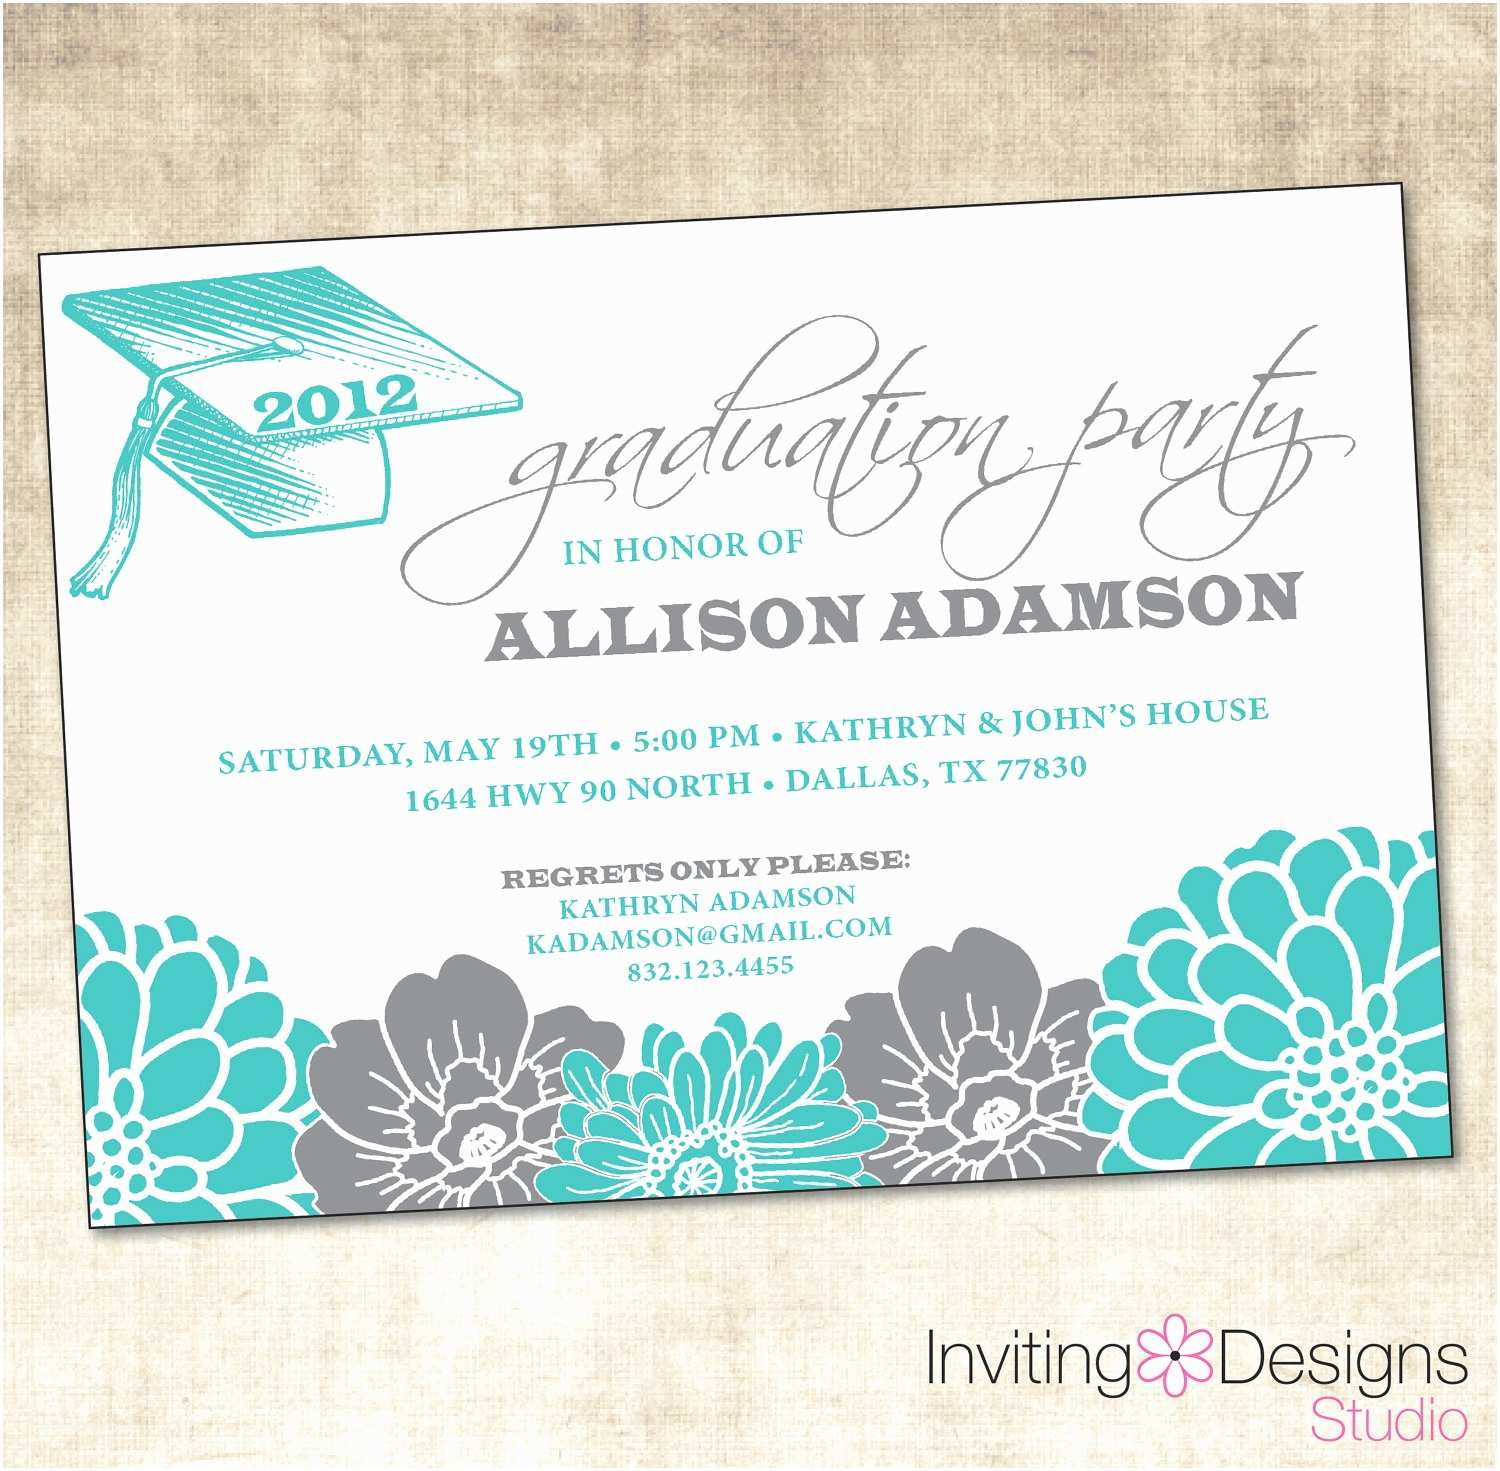 Graduation Pool Party Invitations Contemporary Preschool Class Graduation Invitation